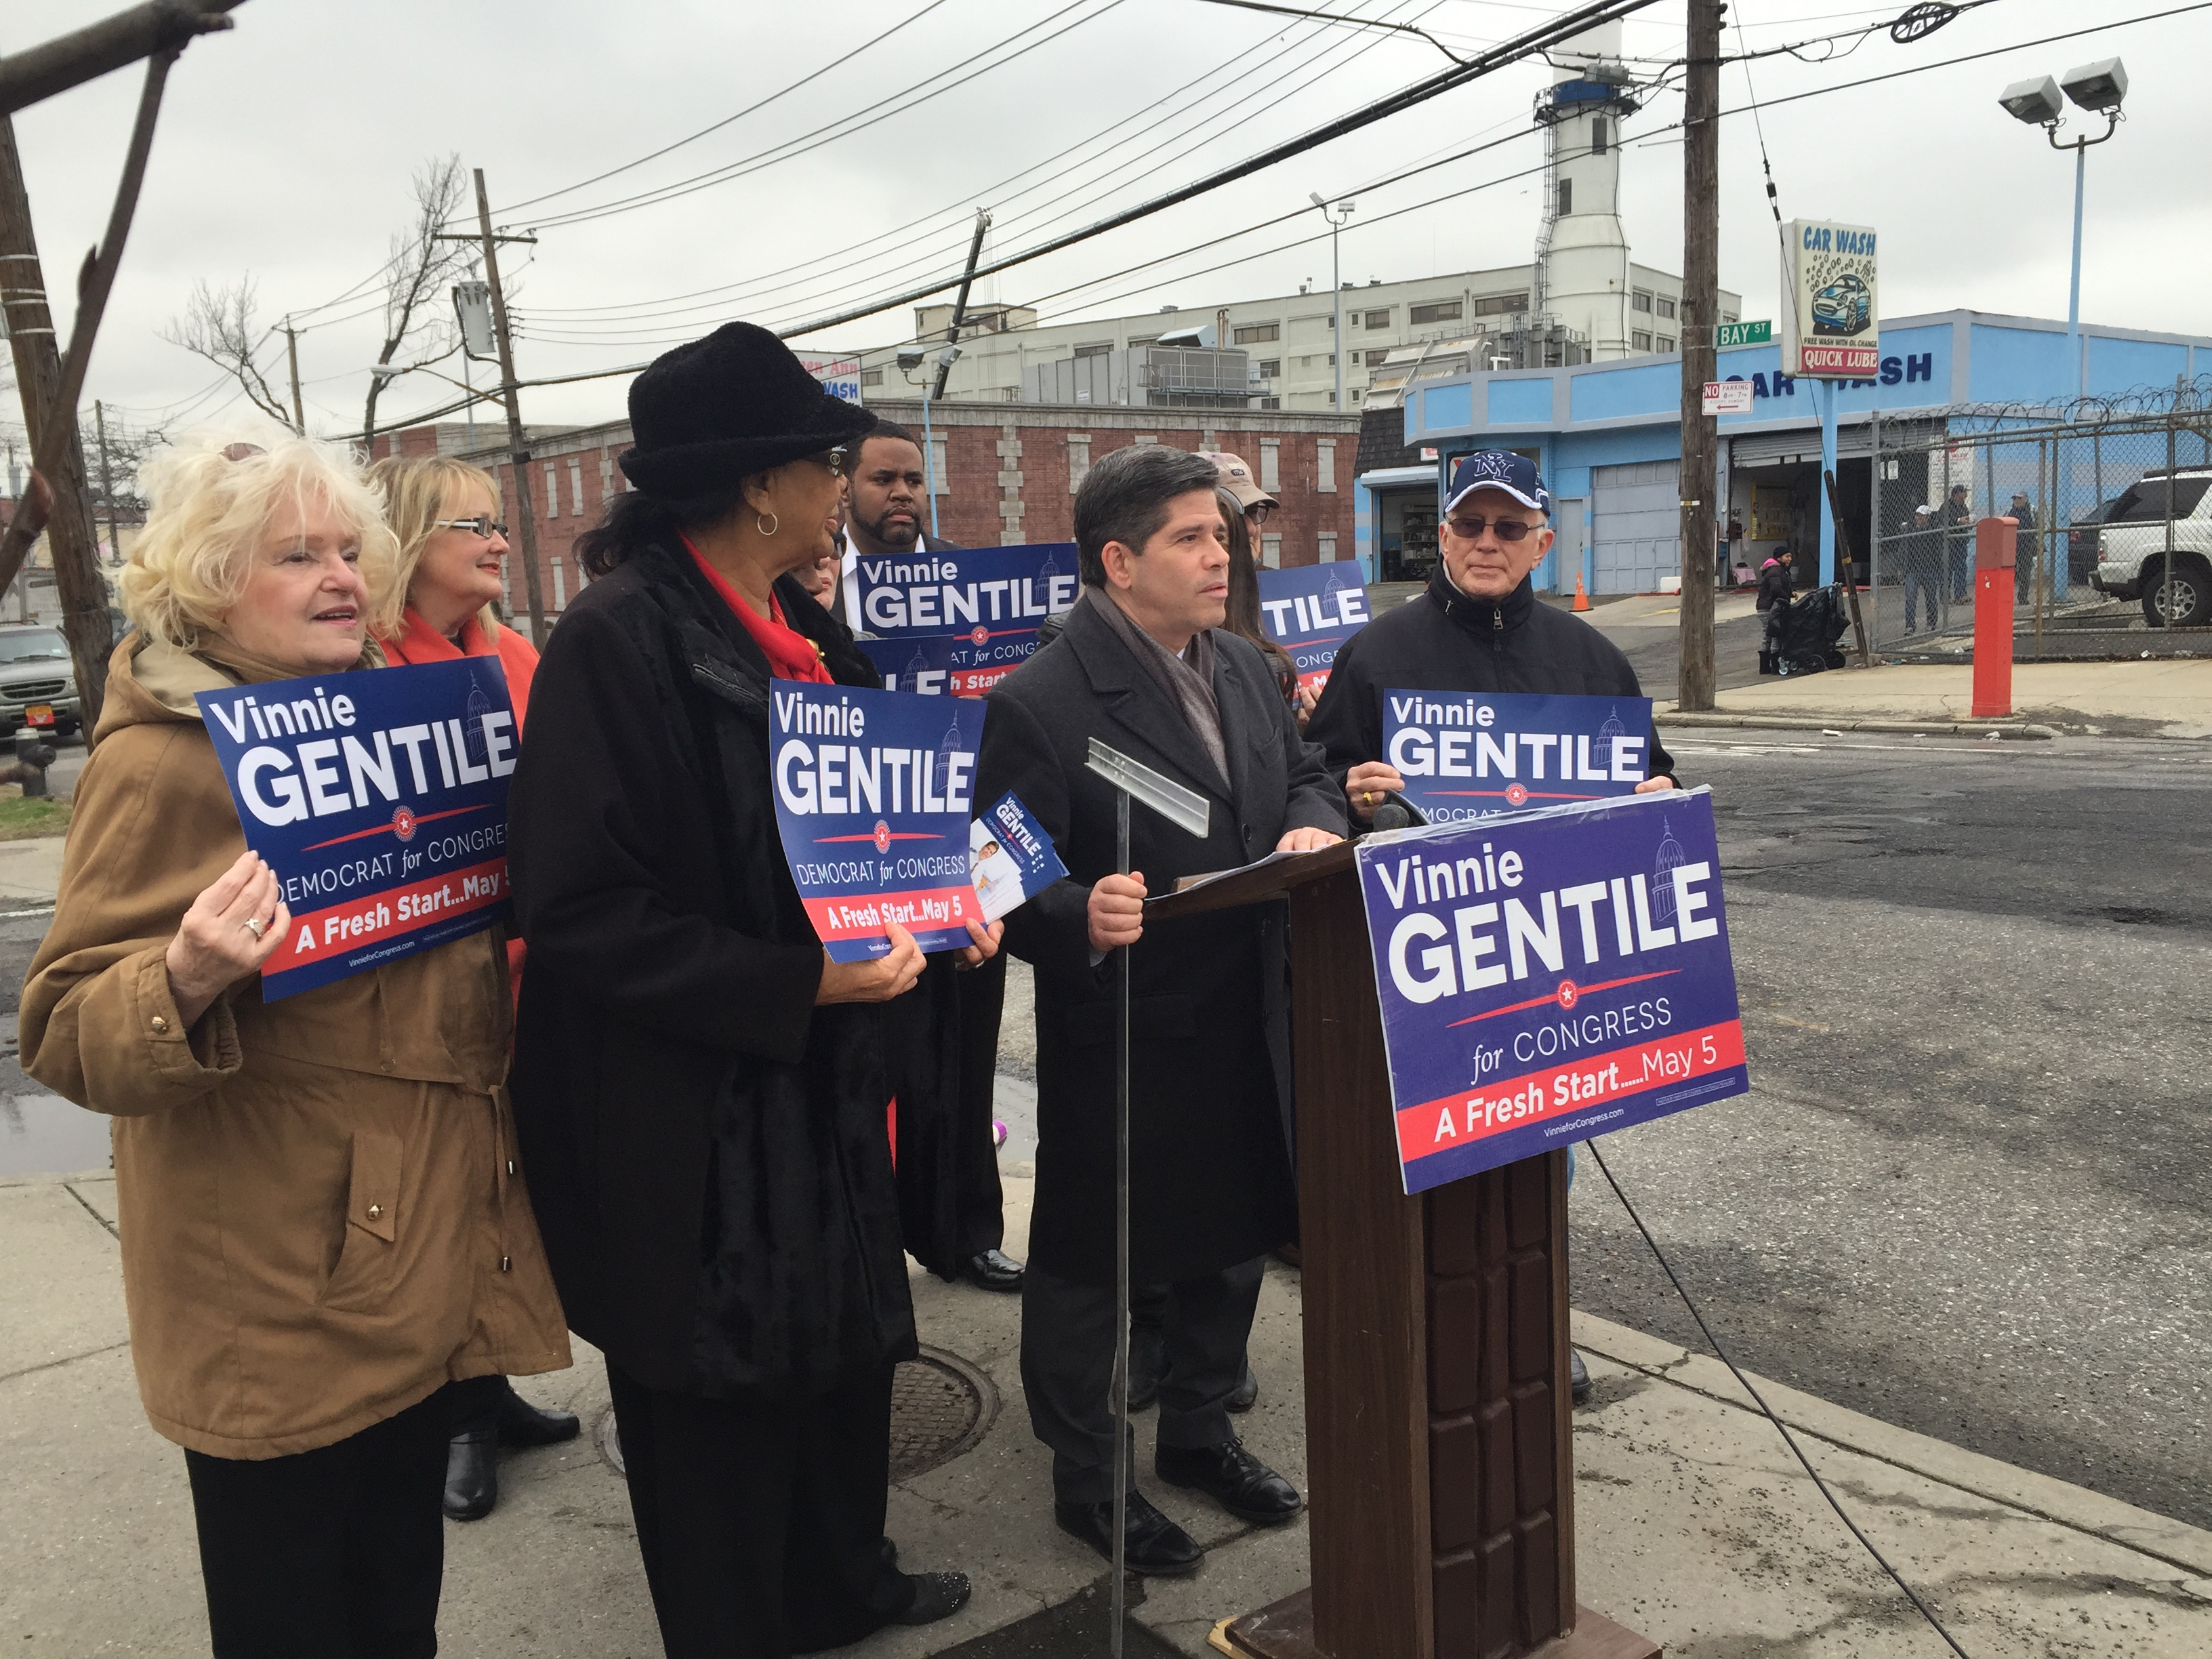 Councilman Vincent Gentile held a press conference on transportation funding today, beside a recently filled pothole. (Photo: Jillian Jorgensen/New York Observer)